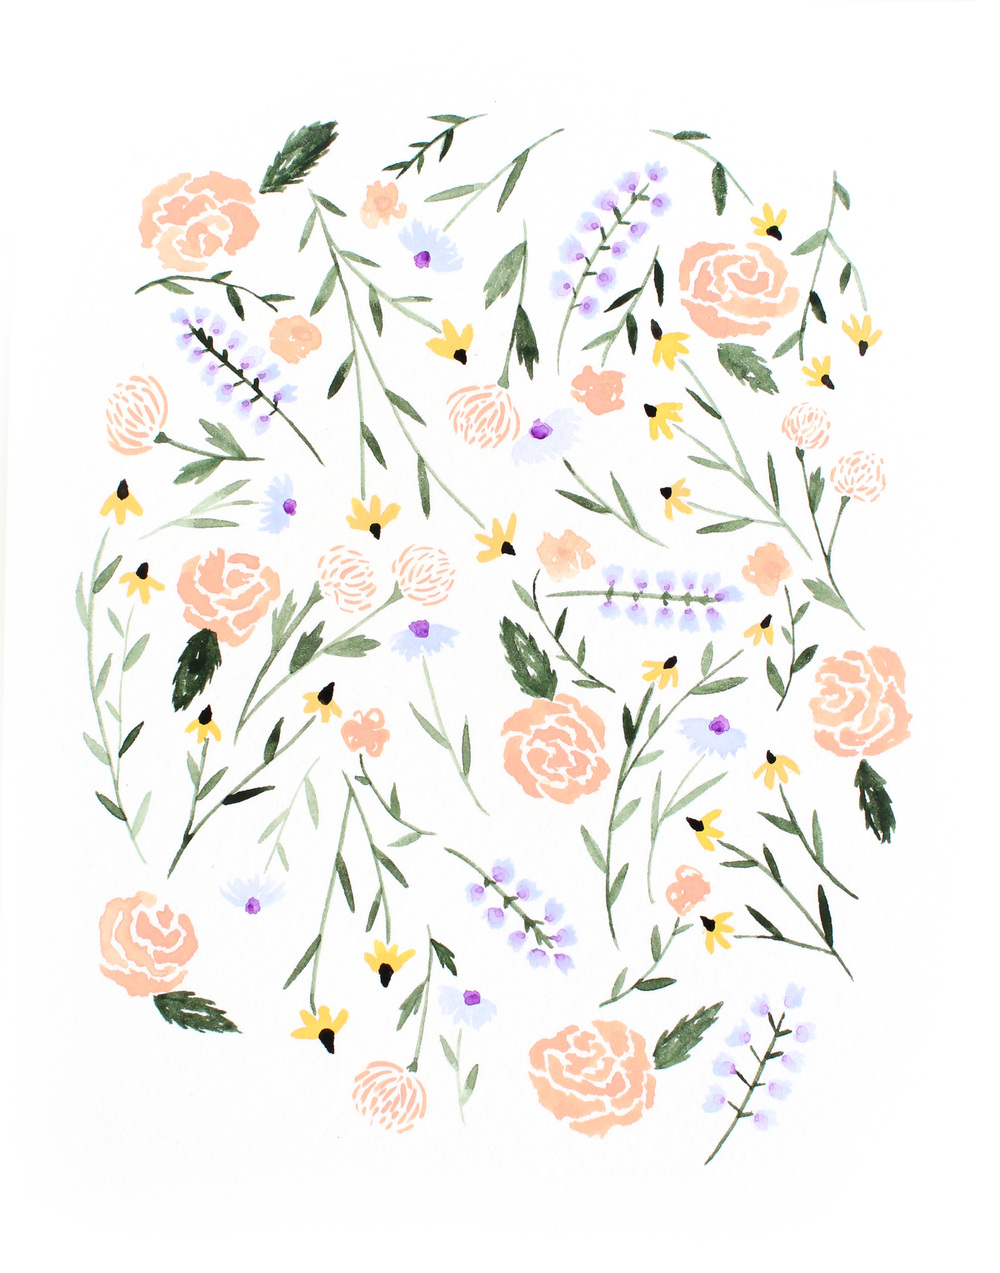 Floral Wildflower Pattern.jpg